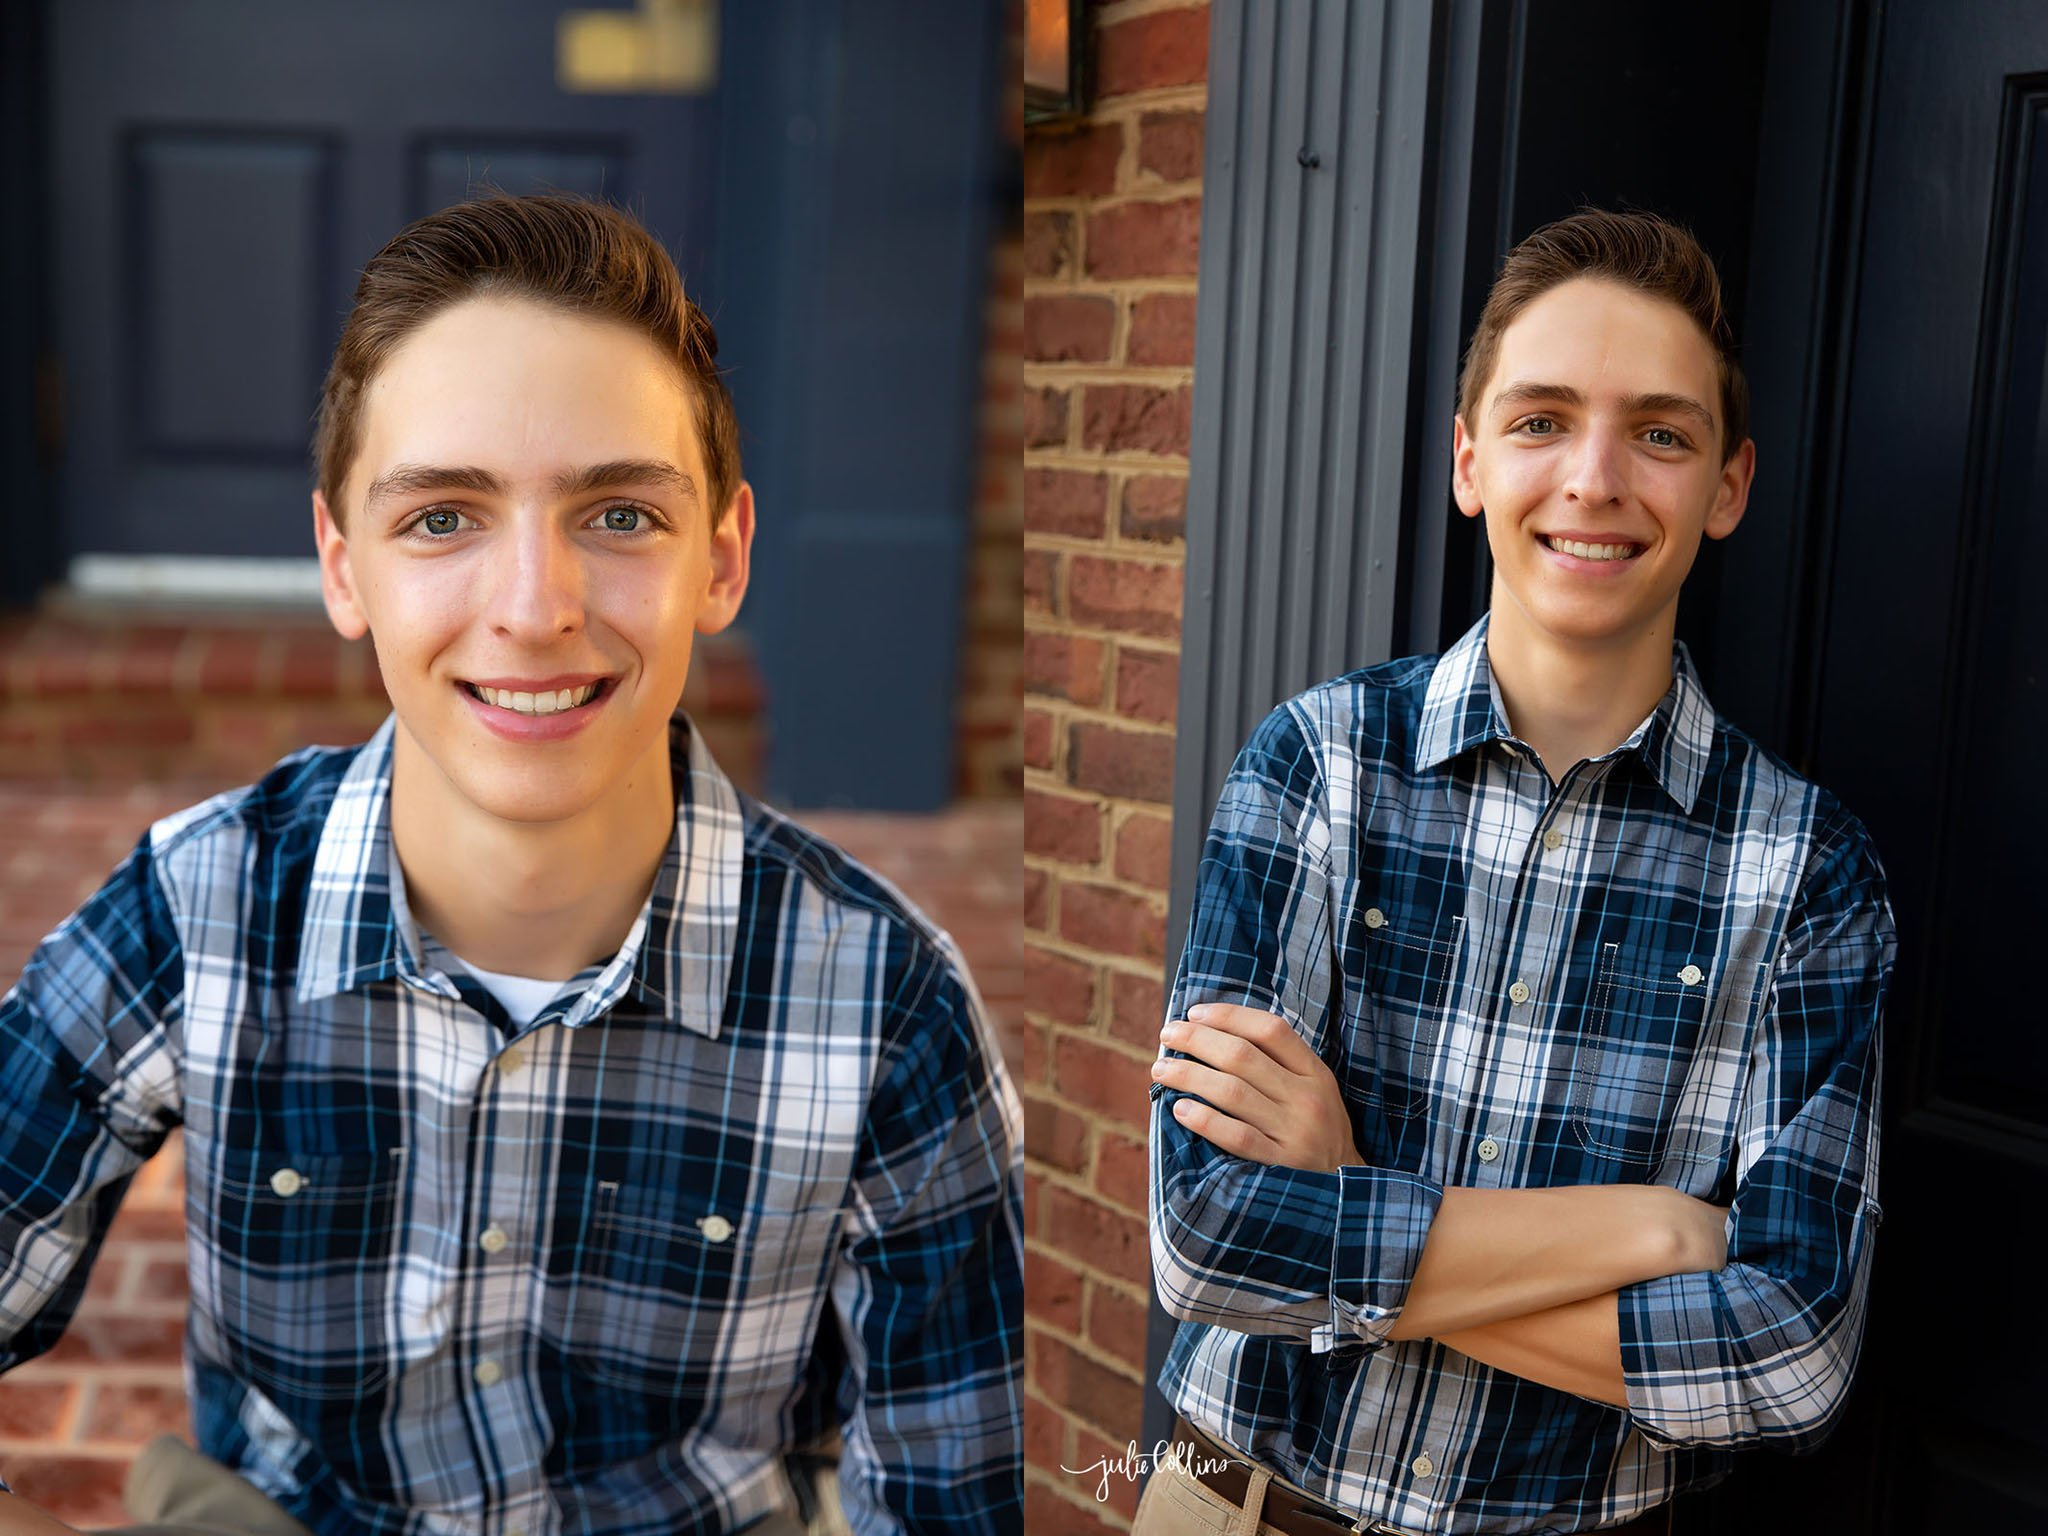 Oconomowoc High School senior boy smiling for camera downtown Delafield, Wisconsin